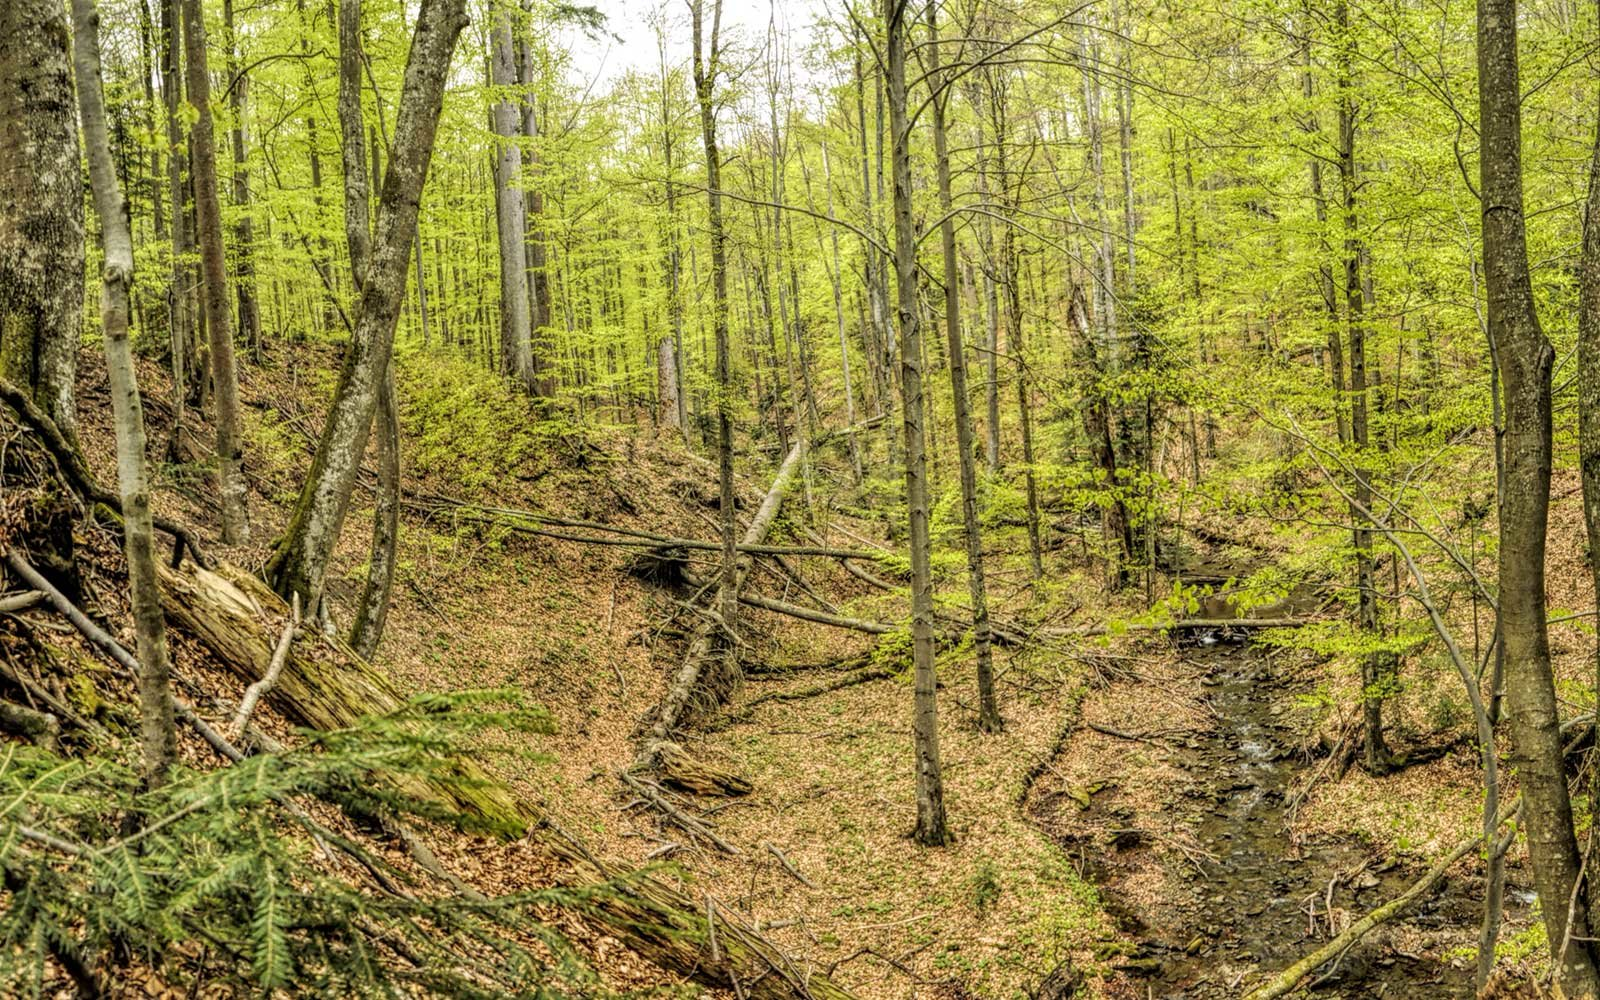 Primeval Beech Forests of the Carpathians, Germany